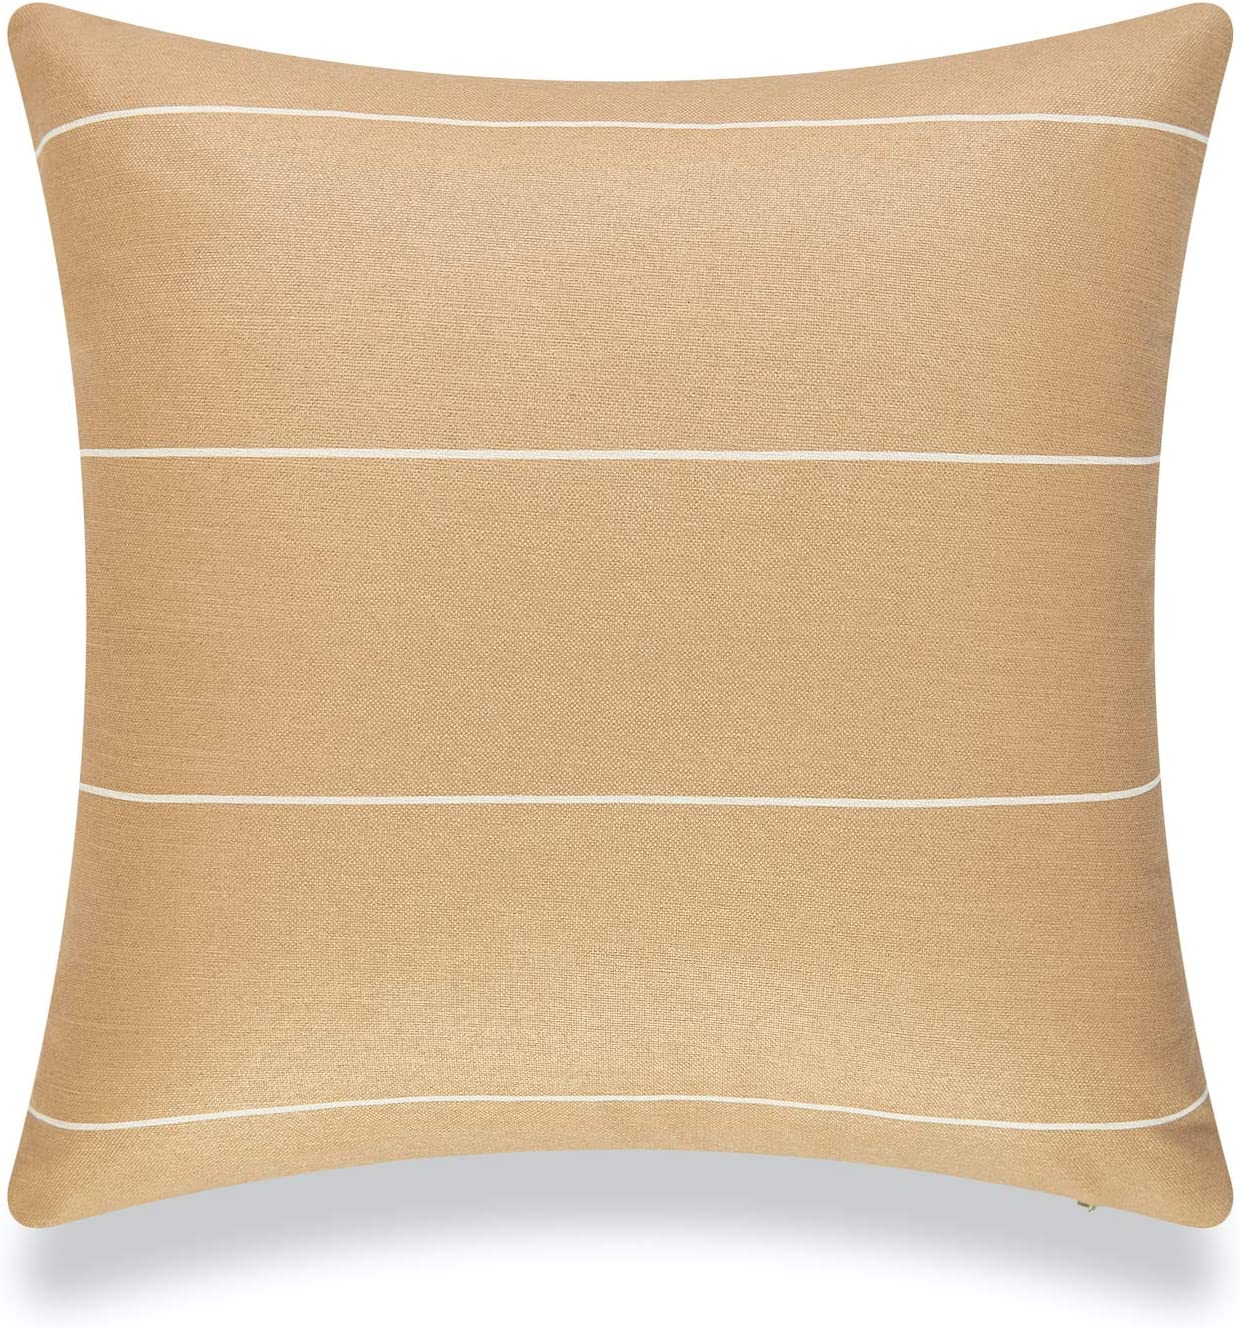 Hofdeco Modern Boho Patio Indoor Outdoor Pillow Cover ONLY for Backyard, Couch, Sofa, Sand Striped, 20